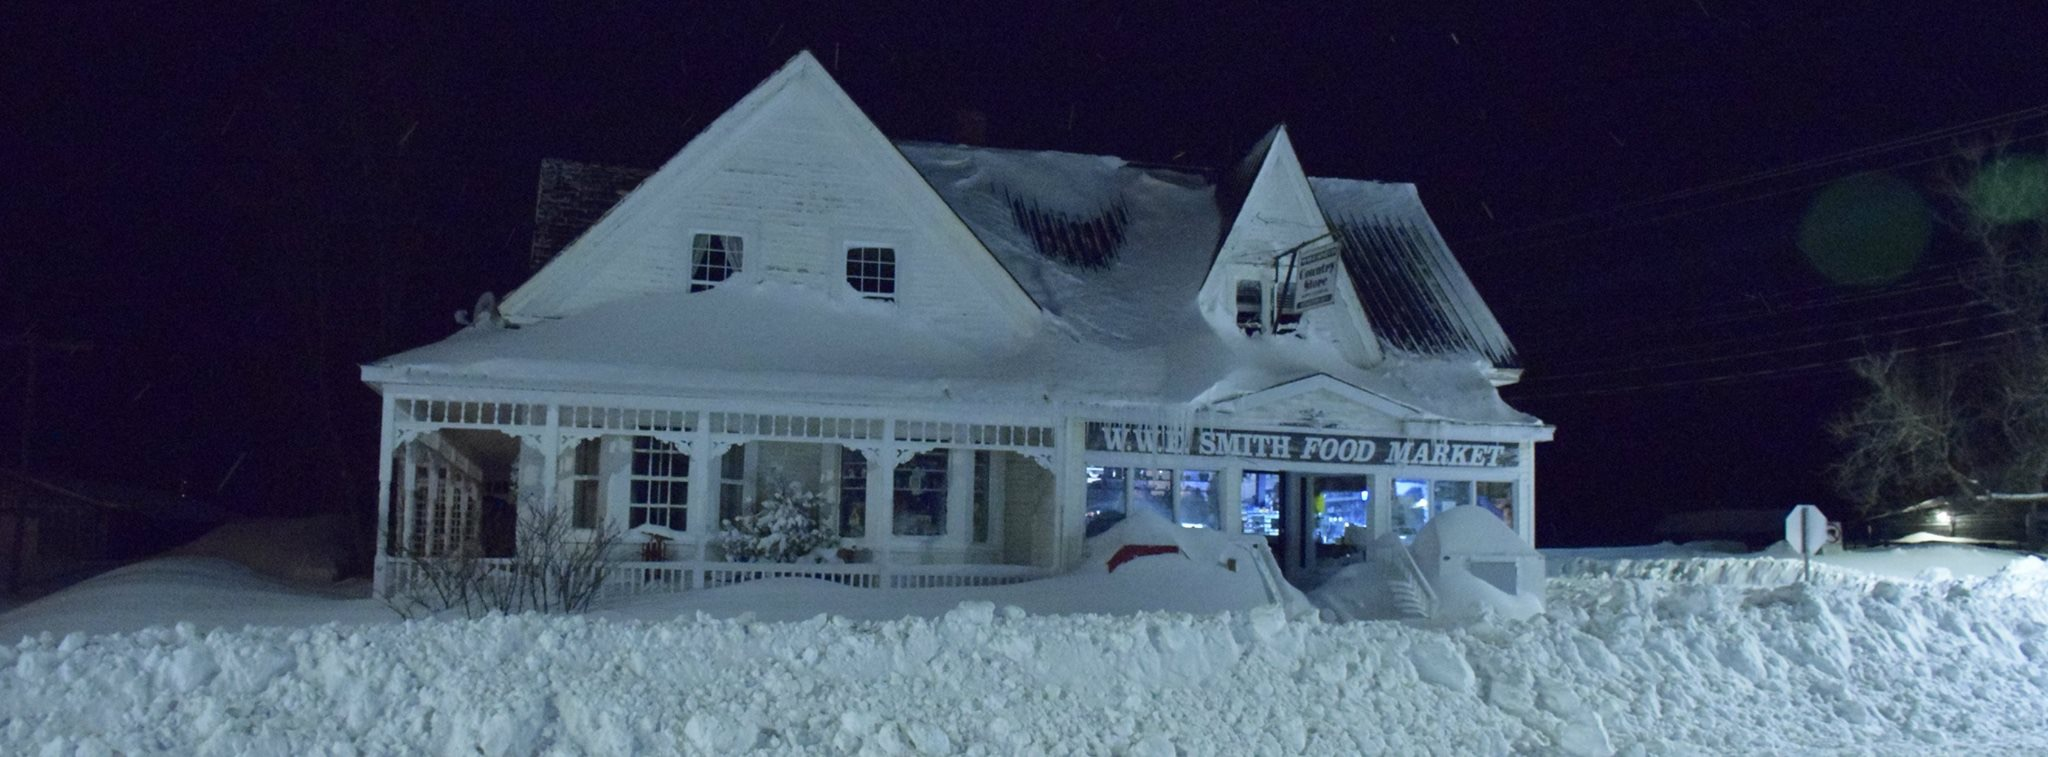 WWW Smith General Store Harvey Station, NB in heavy snow at night